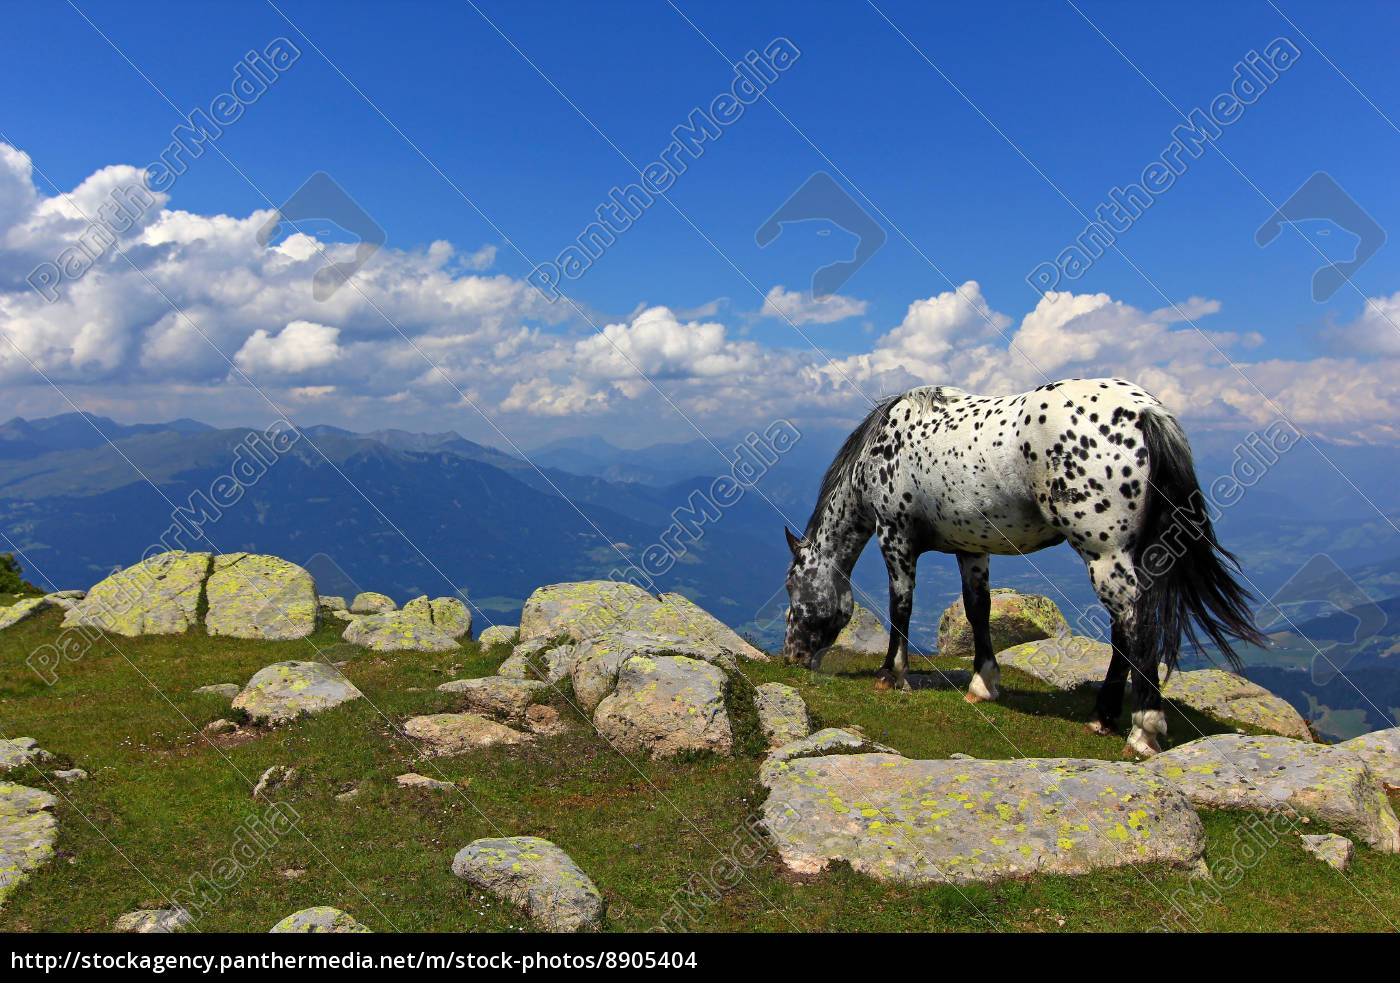 mountains, horse, rock, browse, high mountains, firmament - 8905404